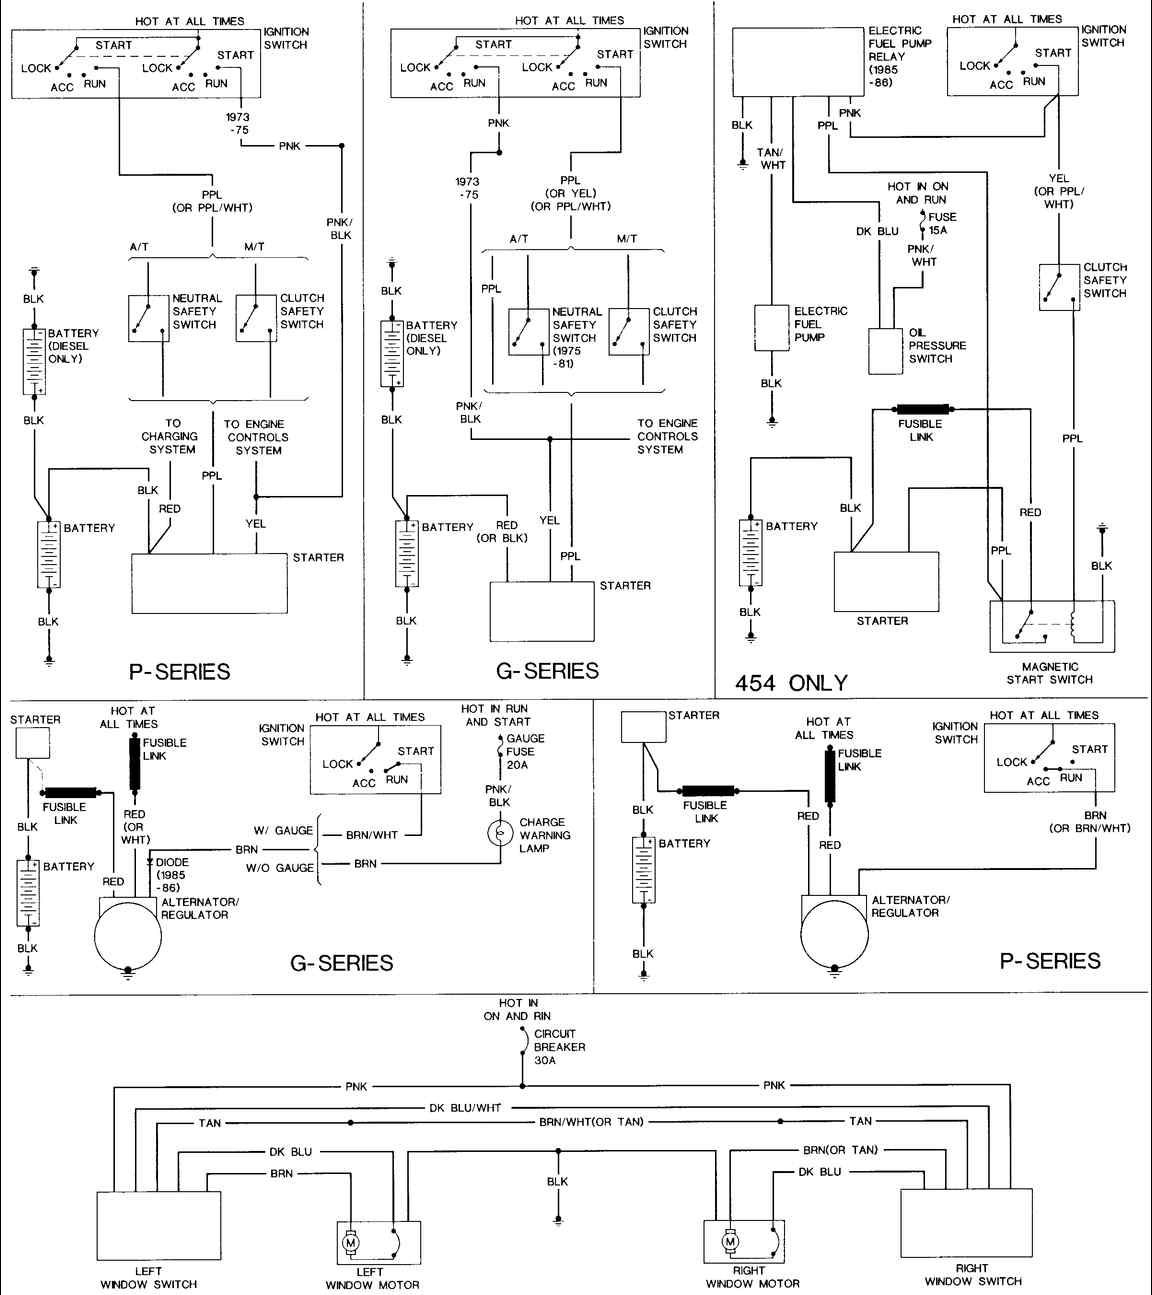 0c73623a181dc376dbb4777e2029d285 85 chevy truck wiring diagram 85 chevy van the steering column Wiring Harness Diagram at soozxer.org